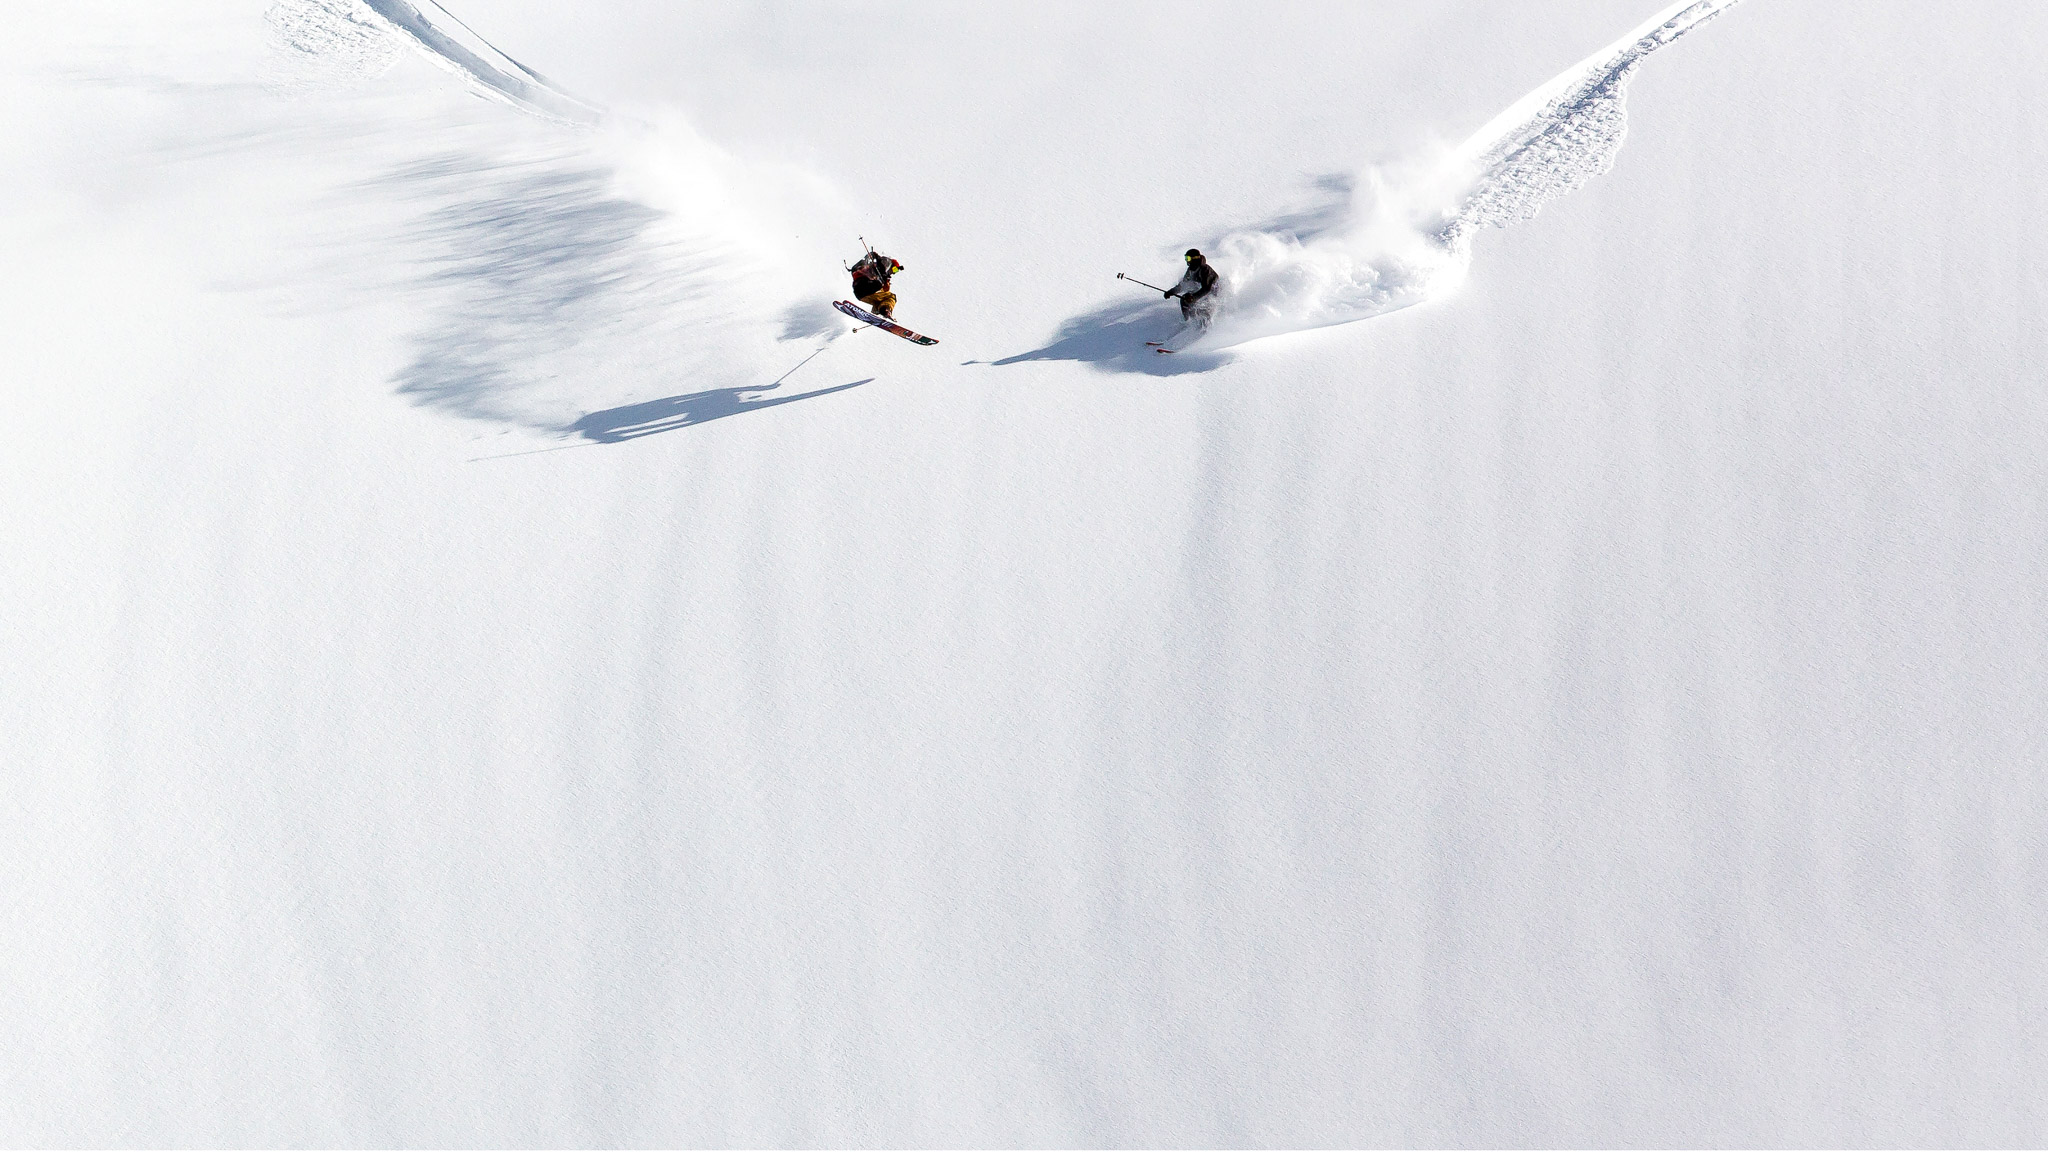 Chris Benchetler and Matt Cook, Canada